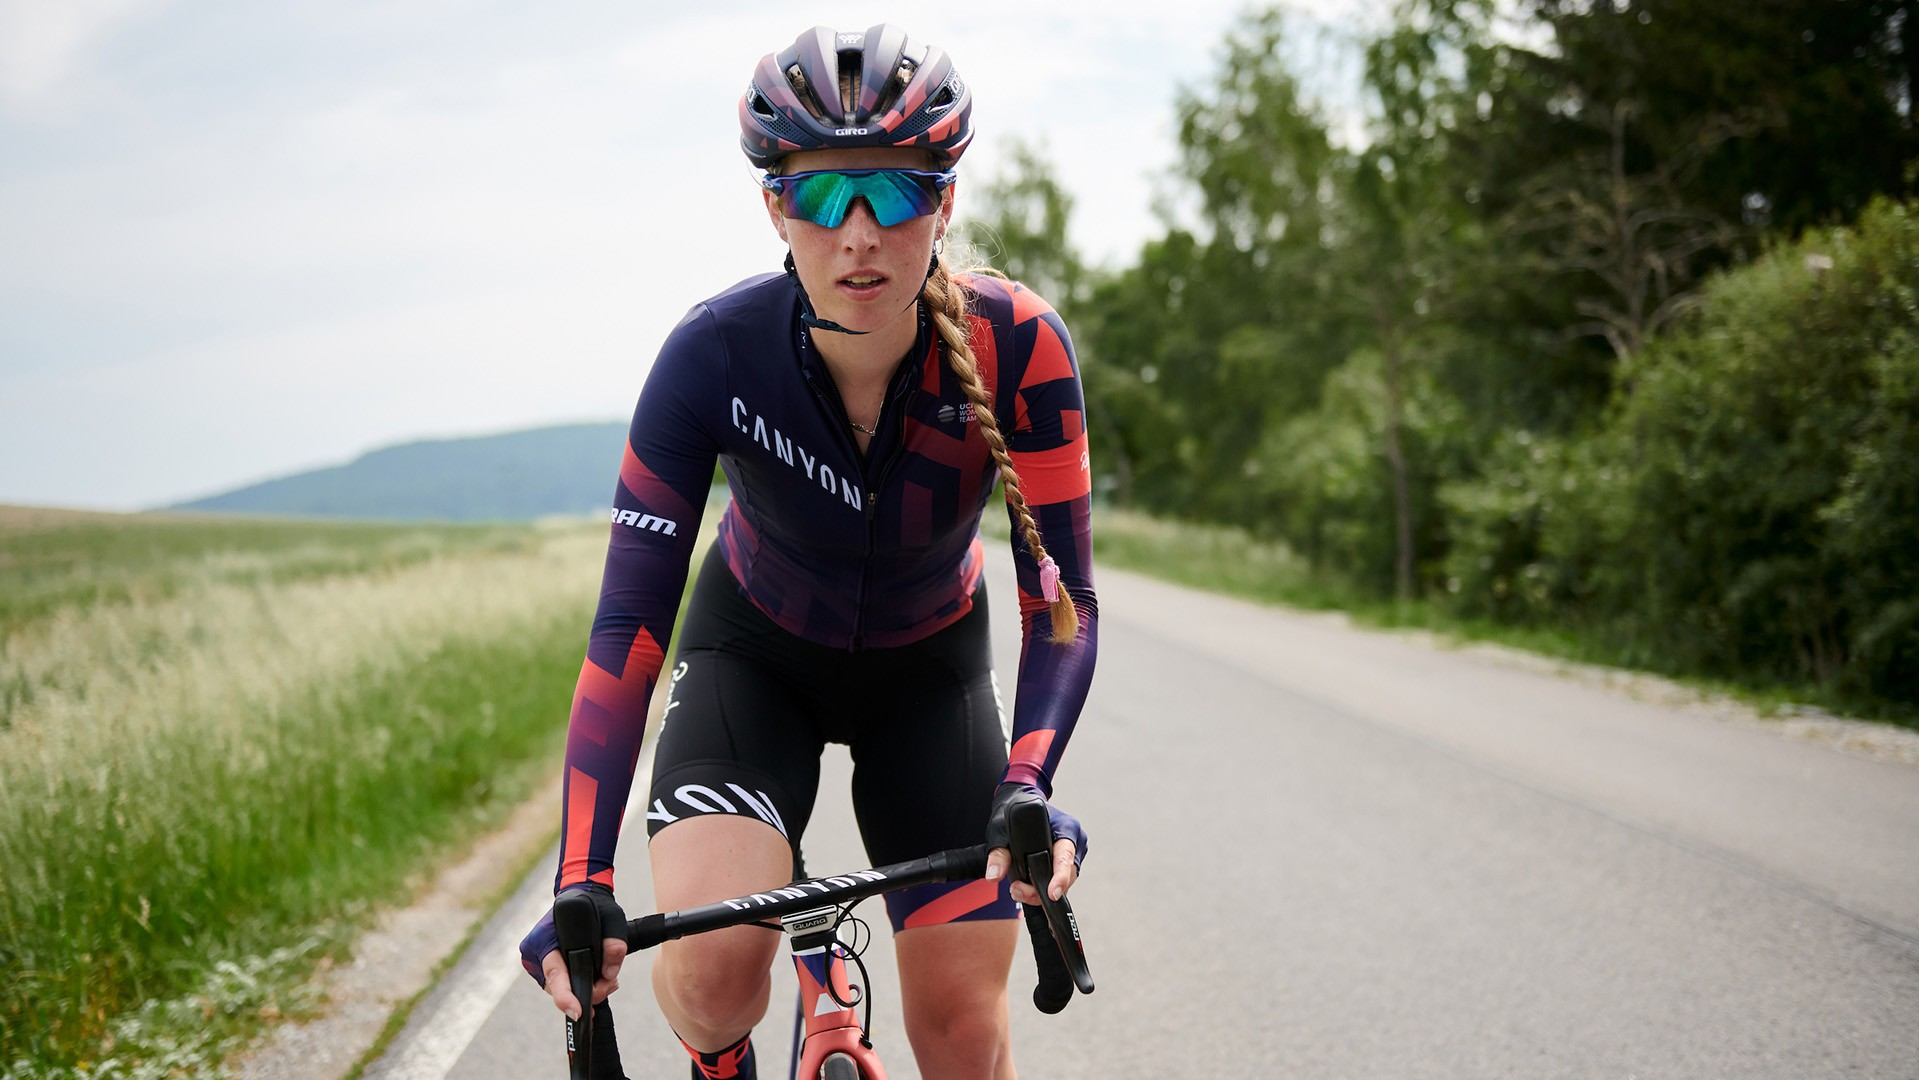 The new Canyon//SRAM Rapha kit is inspired by the Rapha Women's 100 event